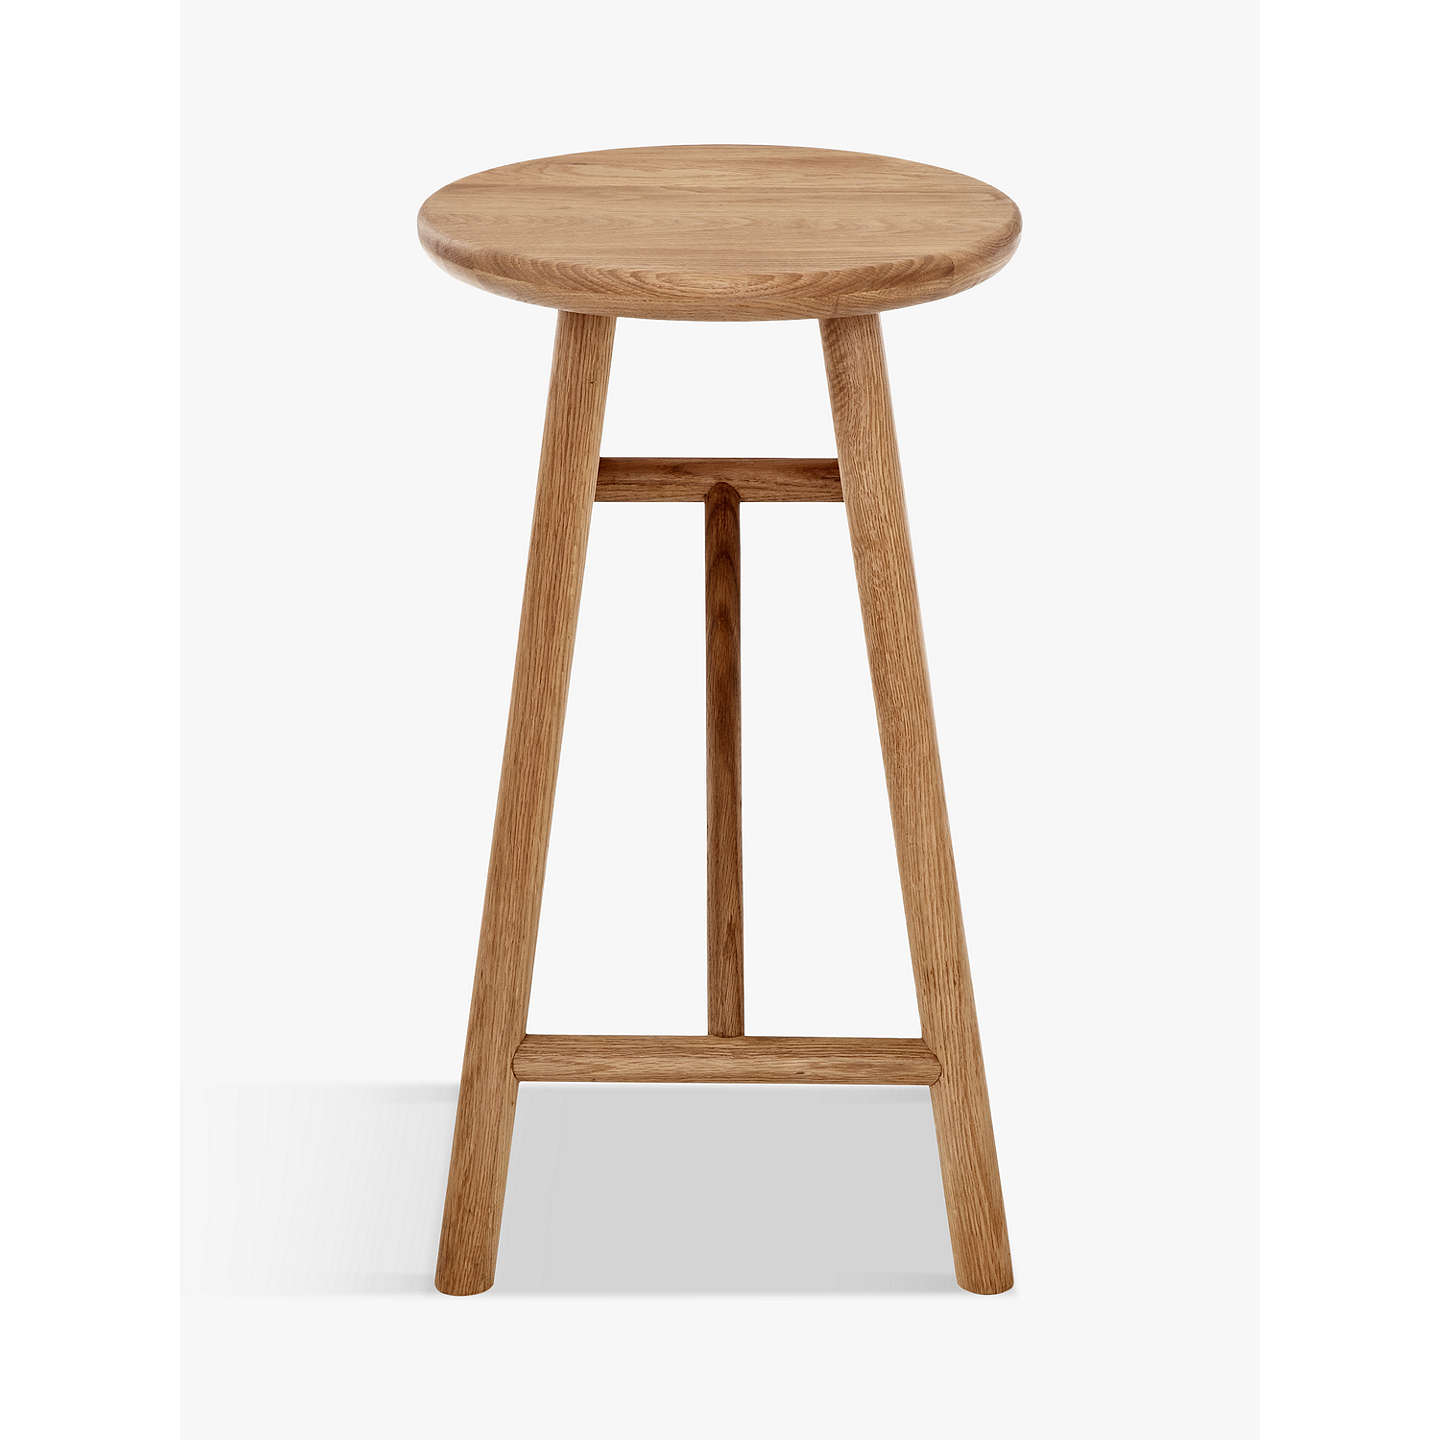 Says Who For John Lewis Why Wood Bar Stool At John Lewis